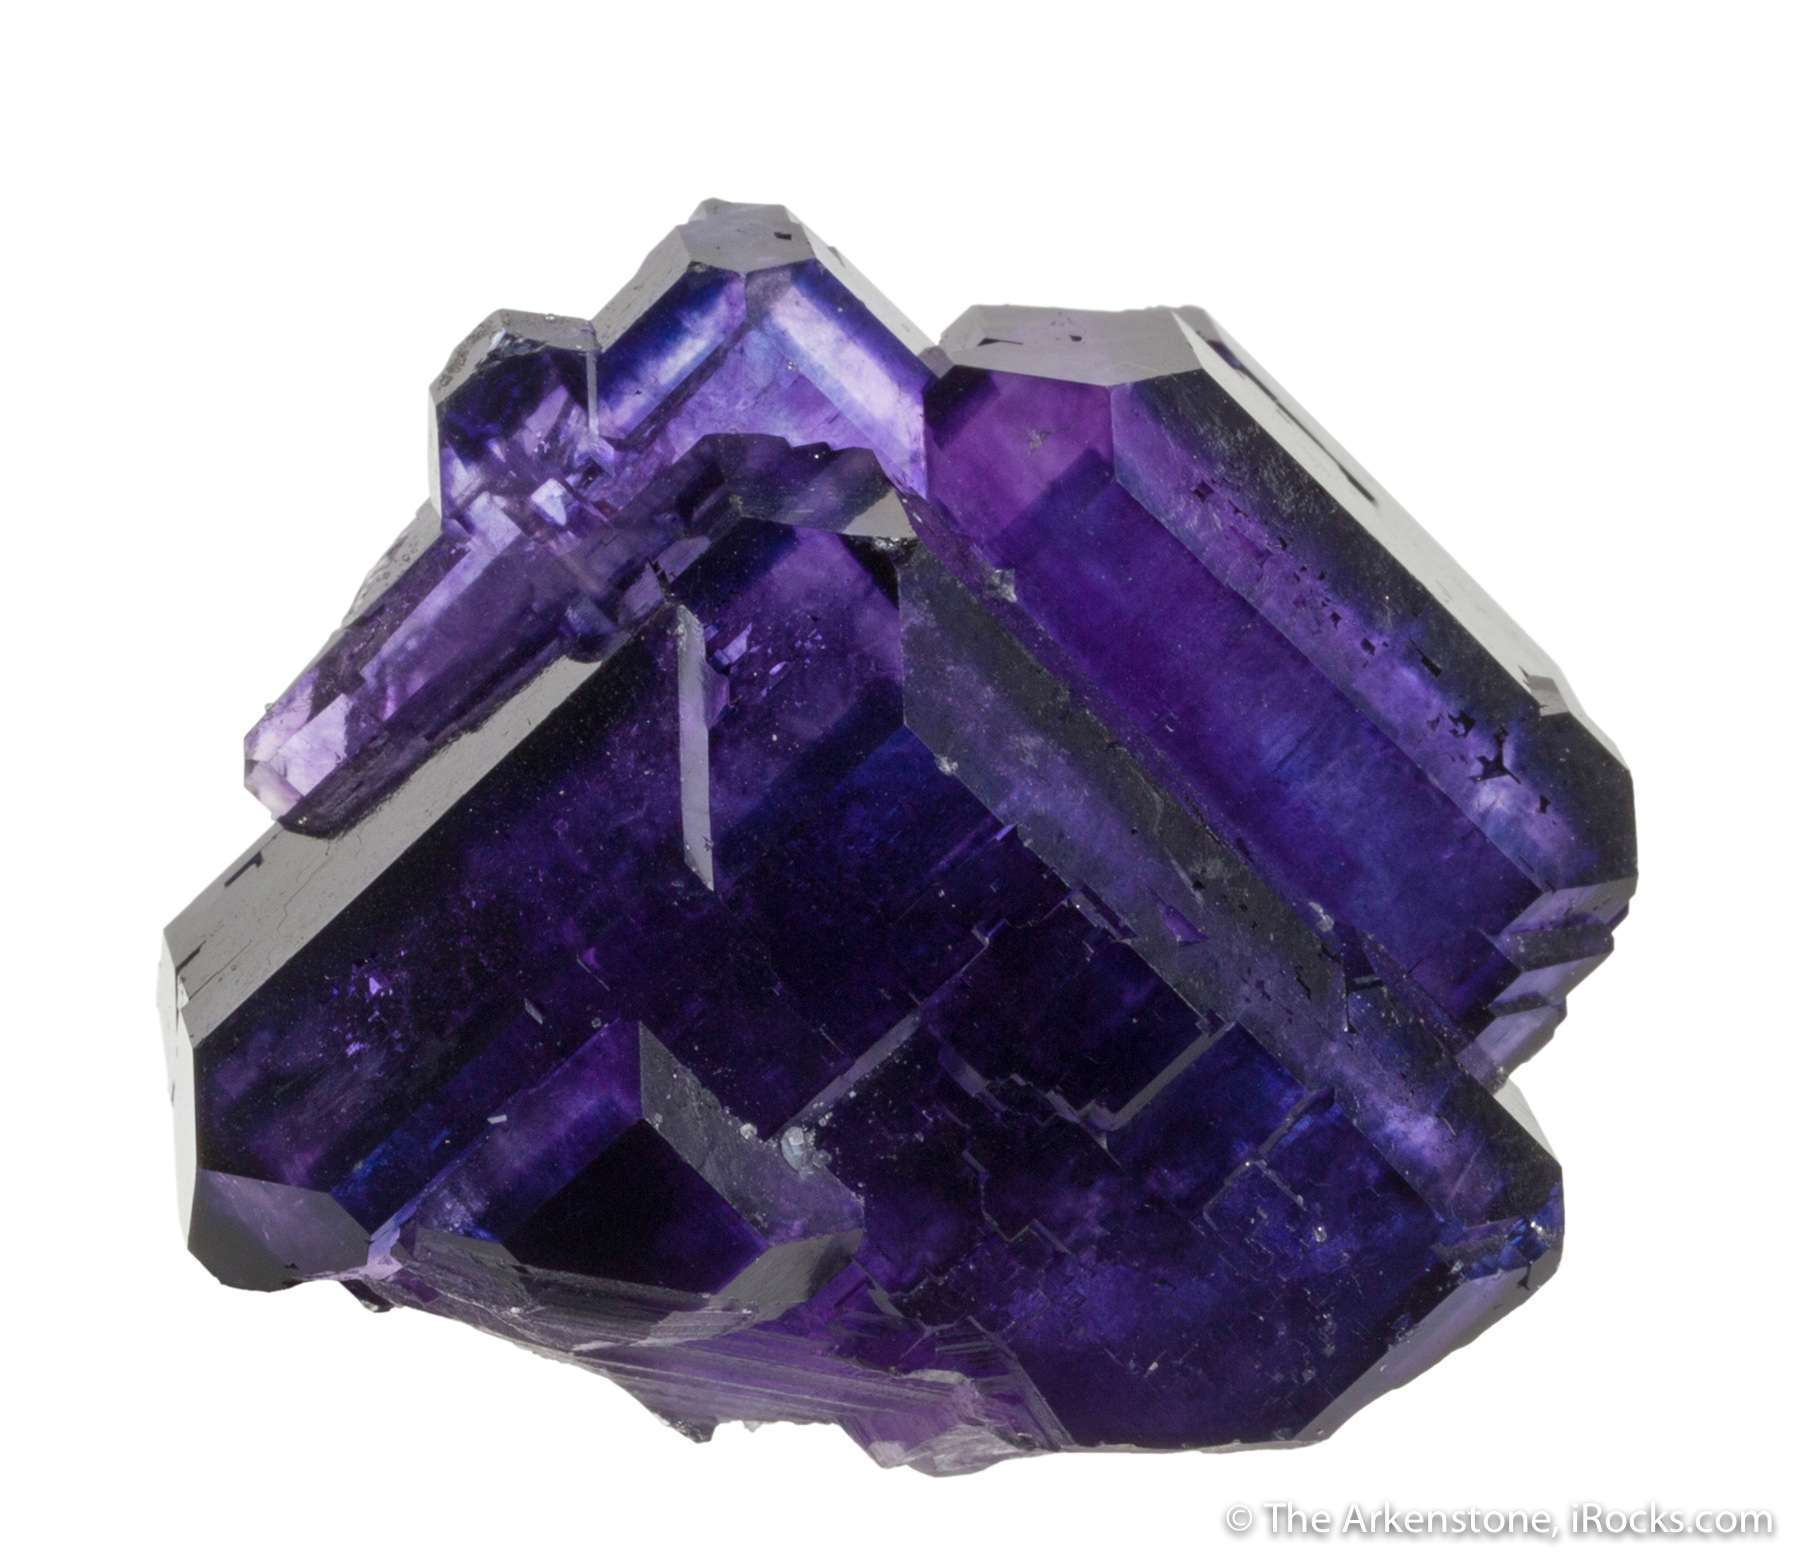 A richly colored cluster fantastic grape juice colored fluorites Found